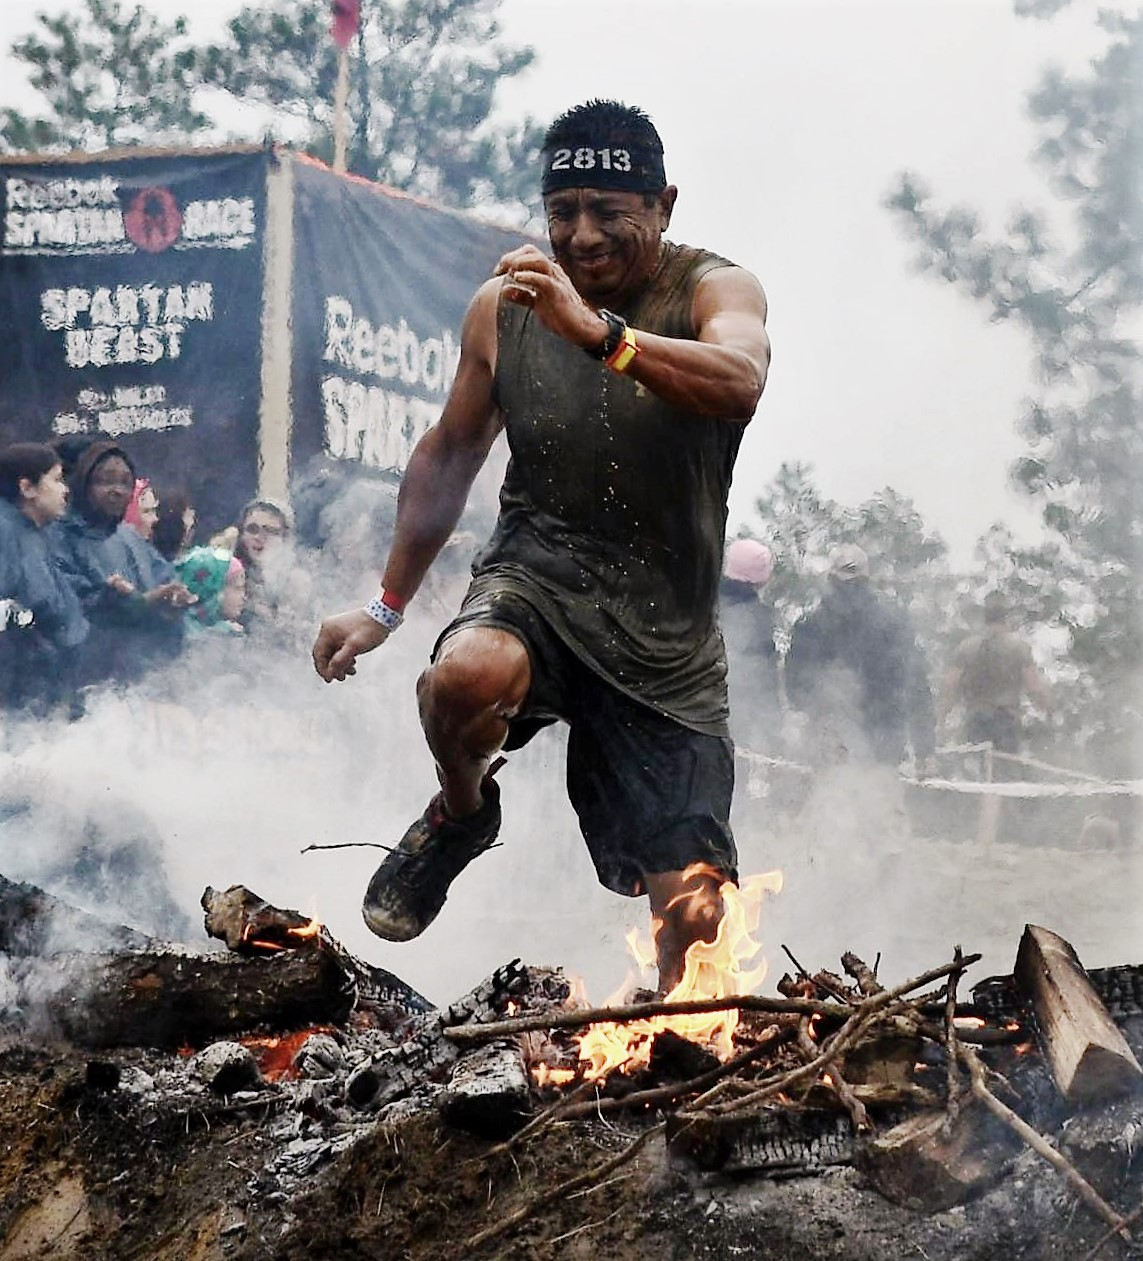 Spartan_race_fire_jump__2_